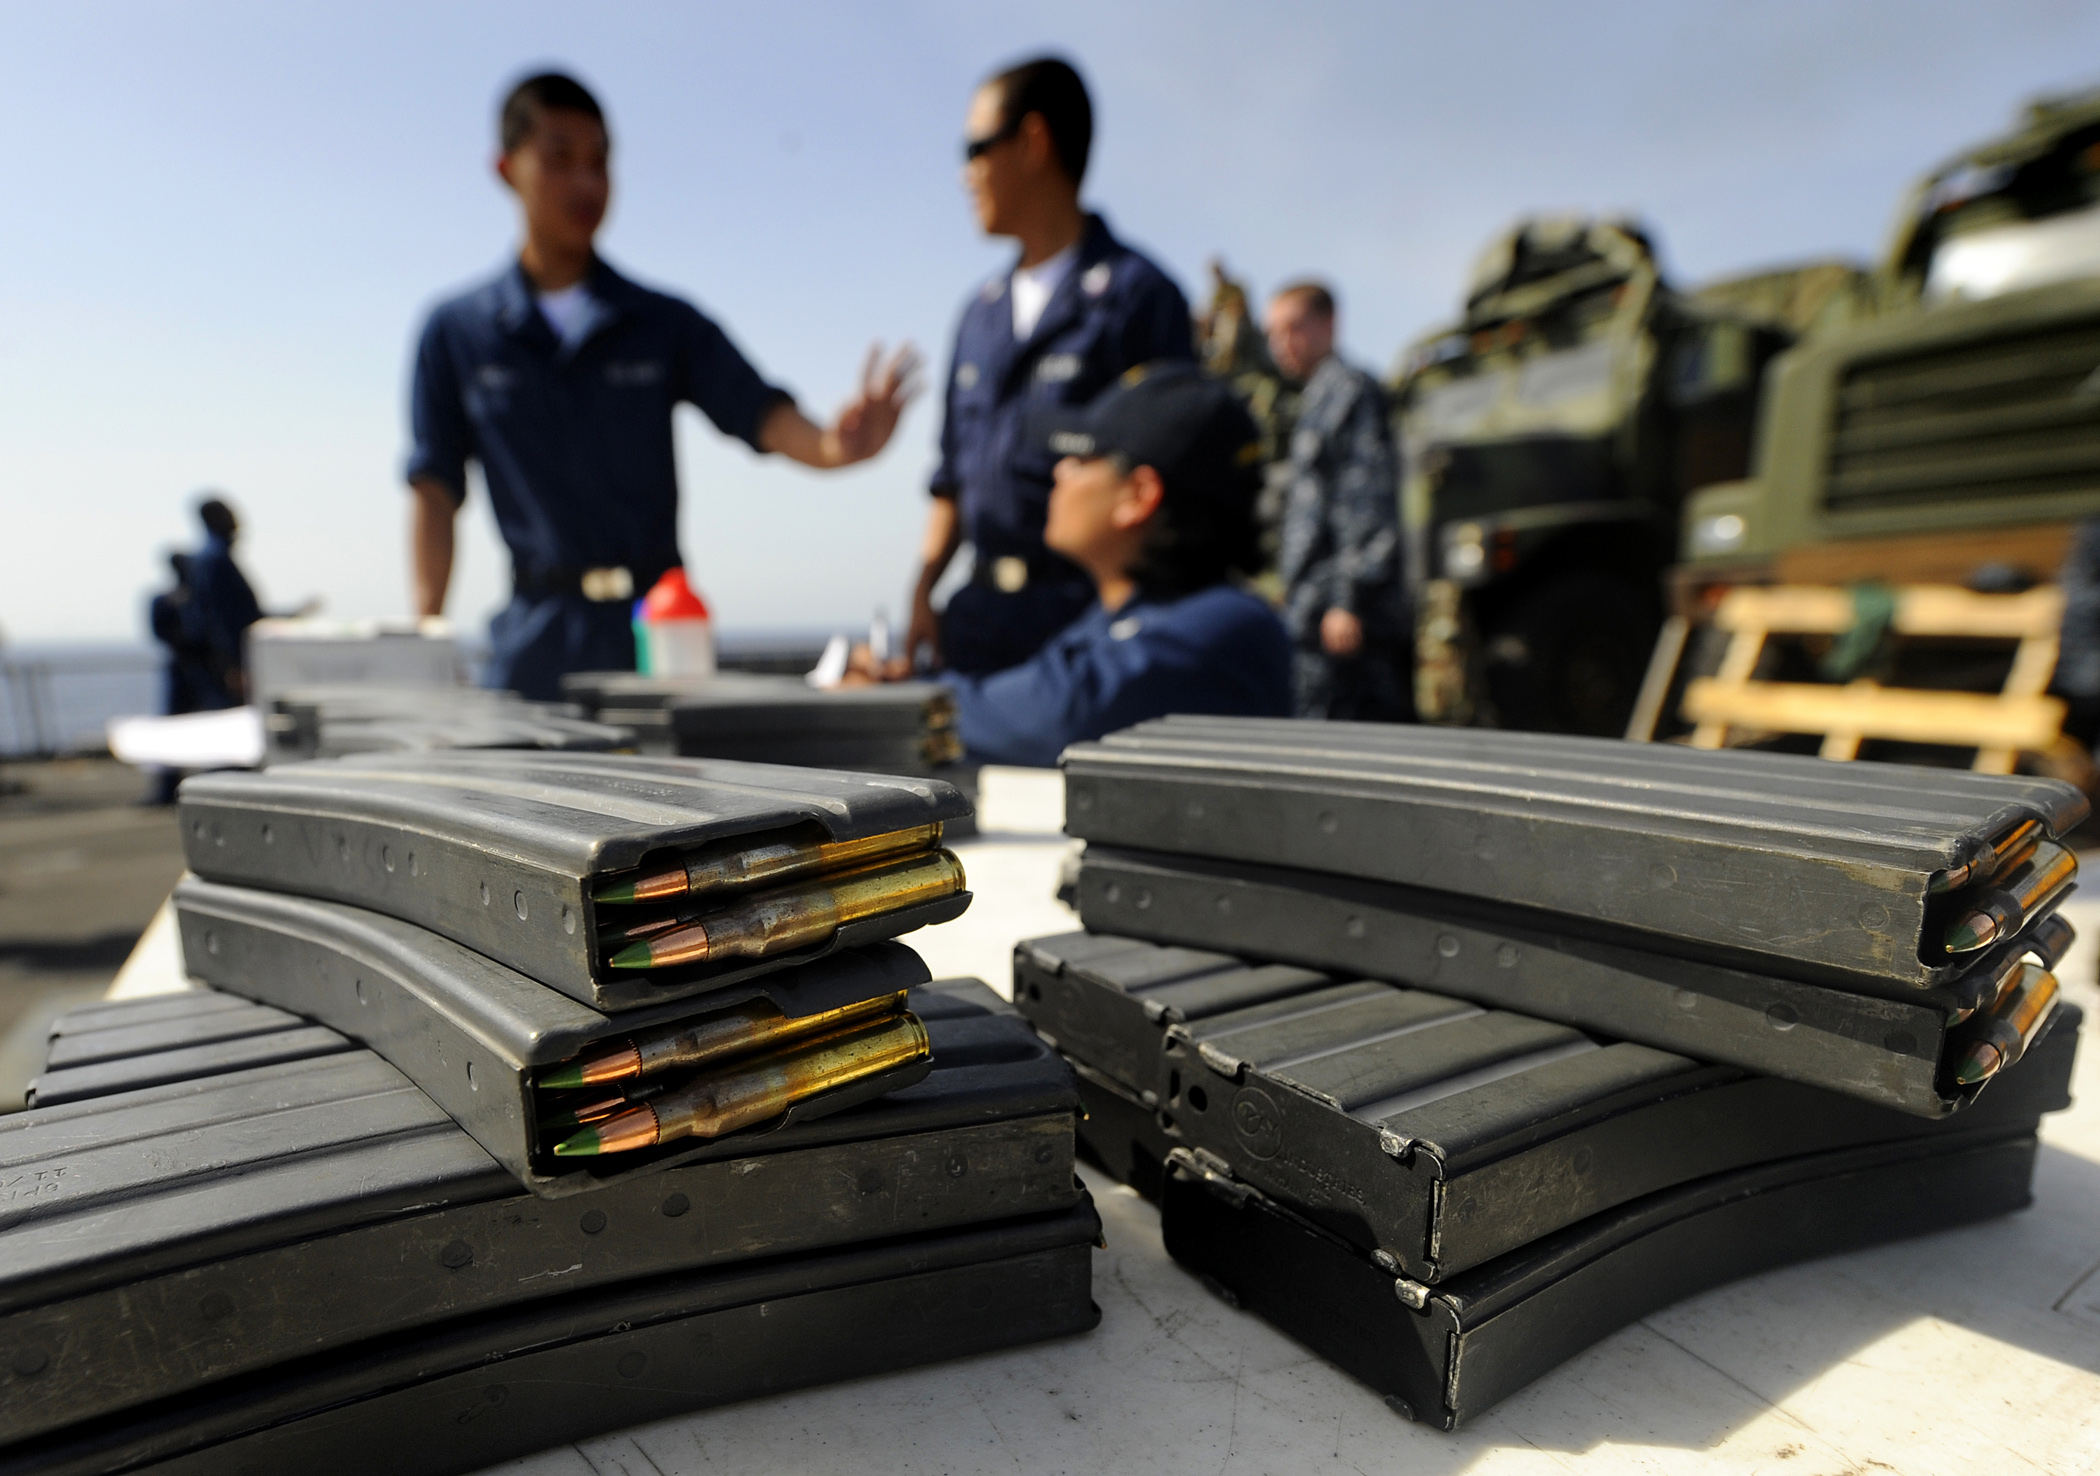 File:US Navy 090930-N-5345W-078 Loaded magazines with 5.56mm